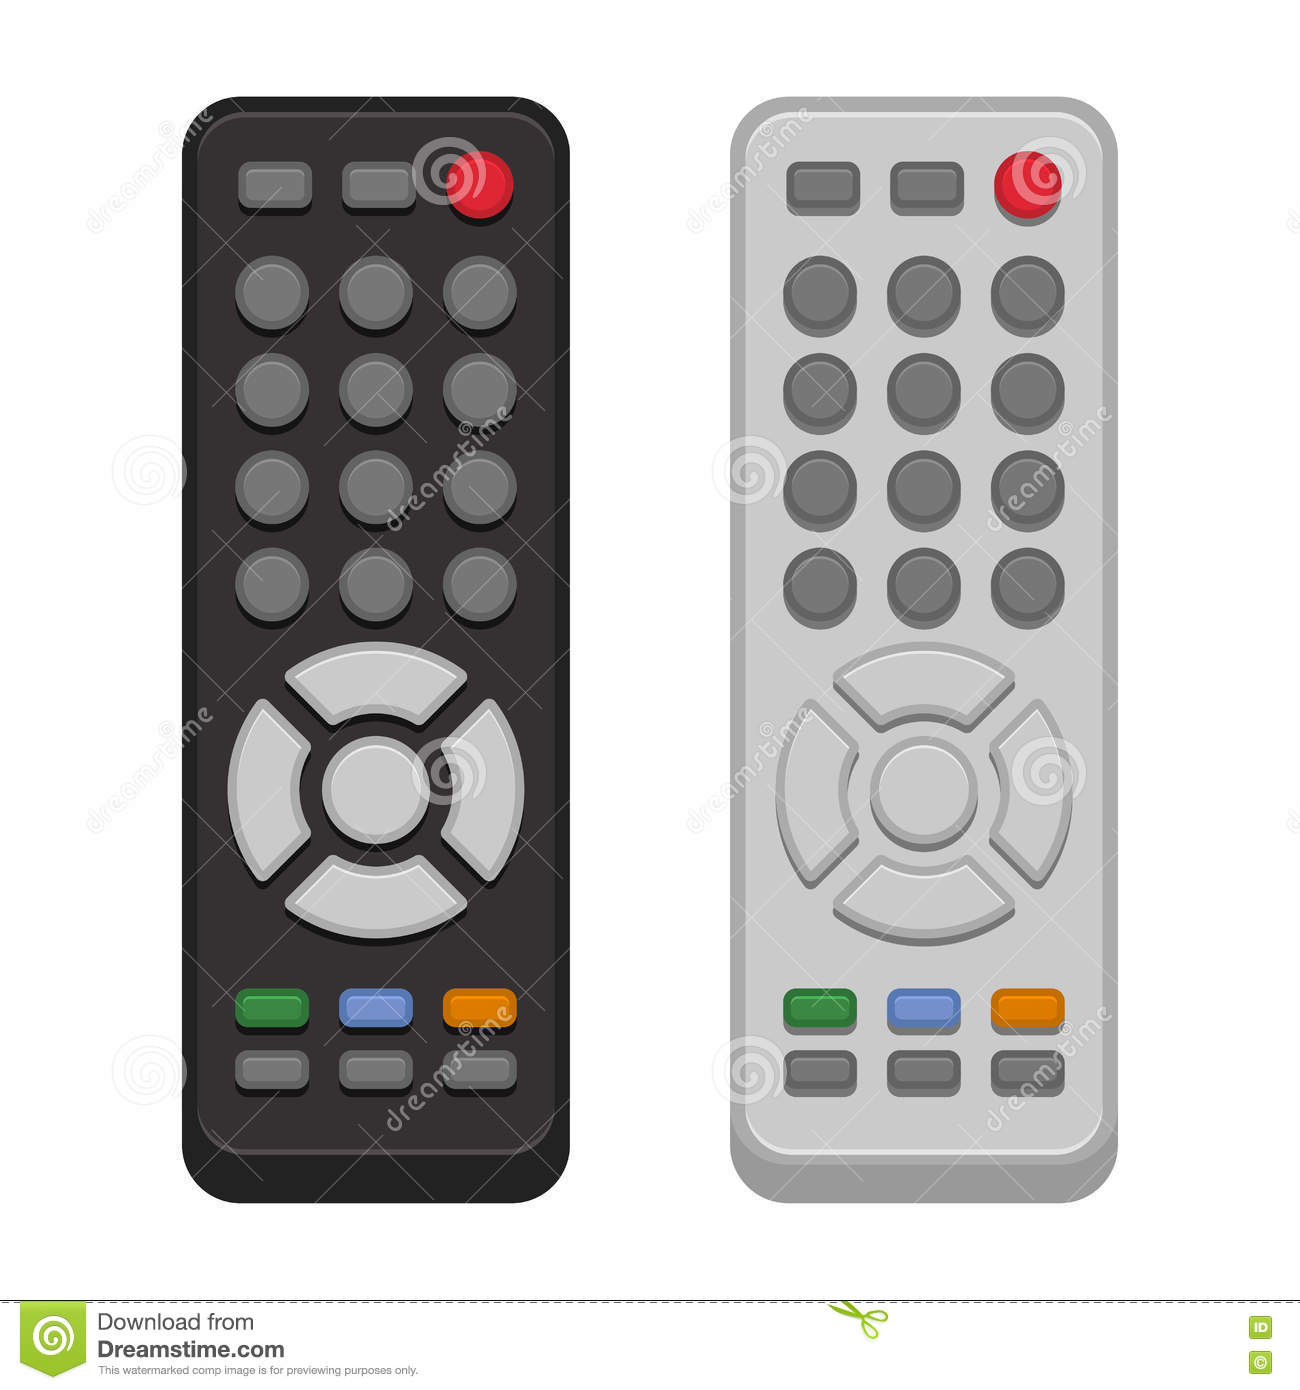 TV Remote Control Set on White Background. Vector